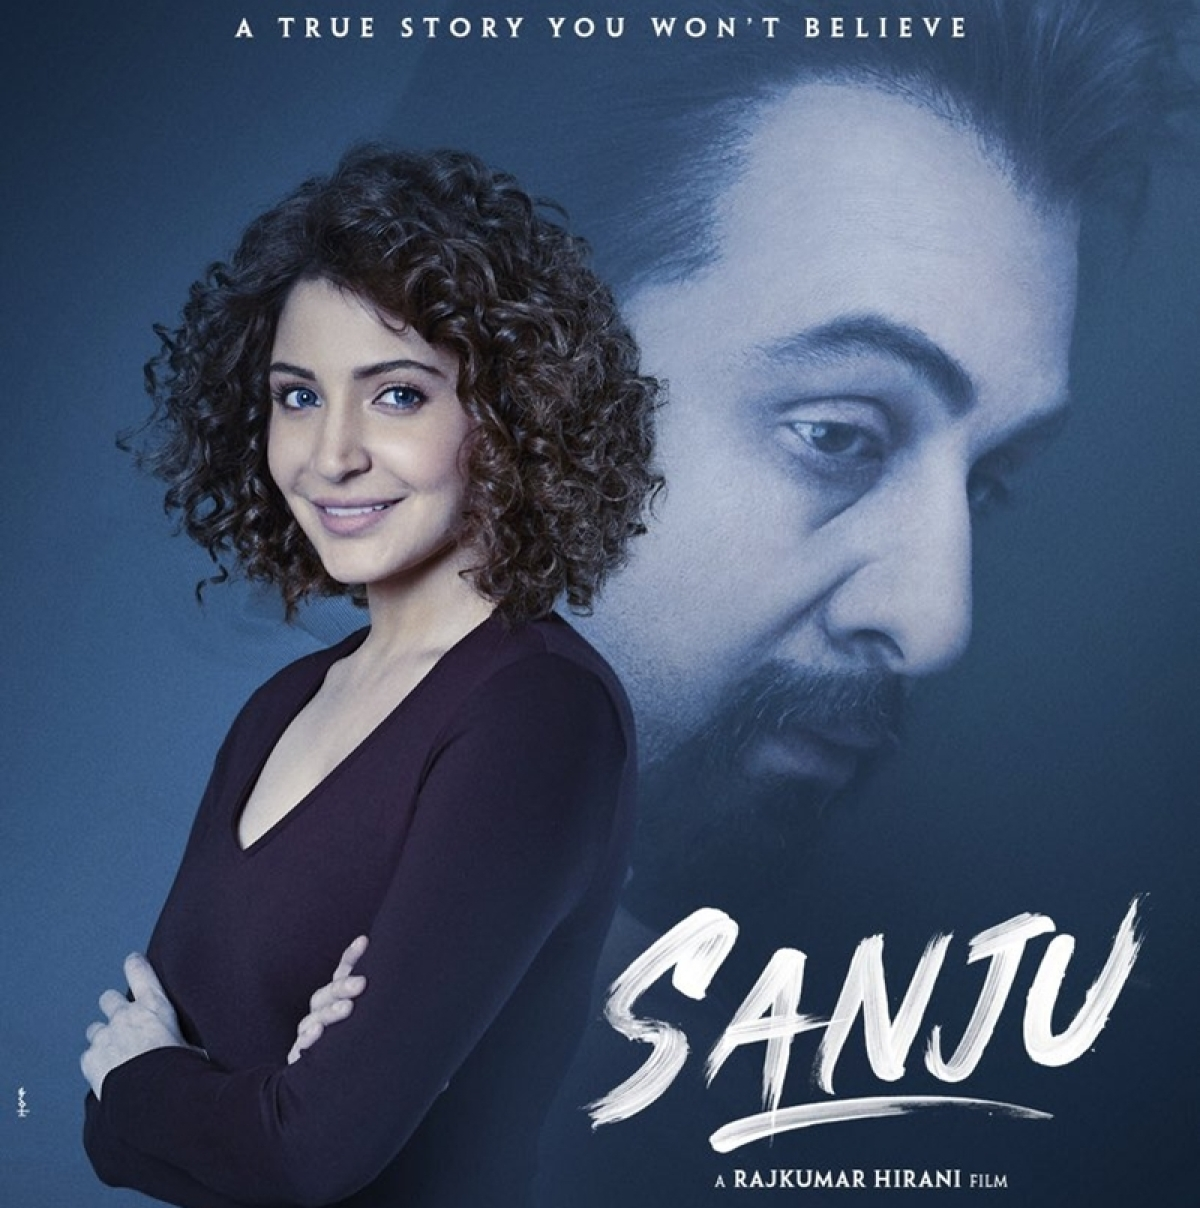 Sanju poster: Anushka Sharma's look from Sanjay Dutt's biopic revealed, can you guess who she is?